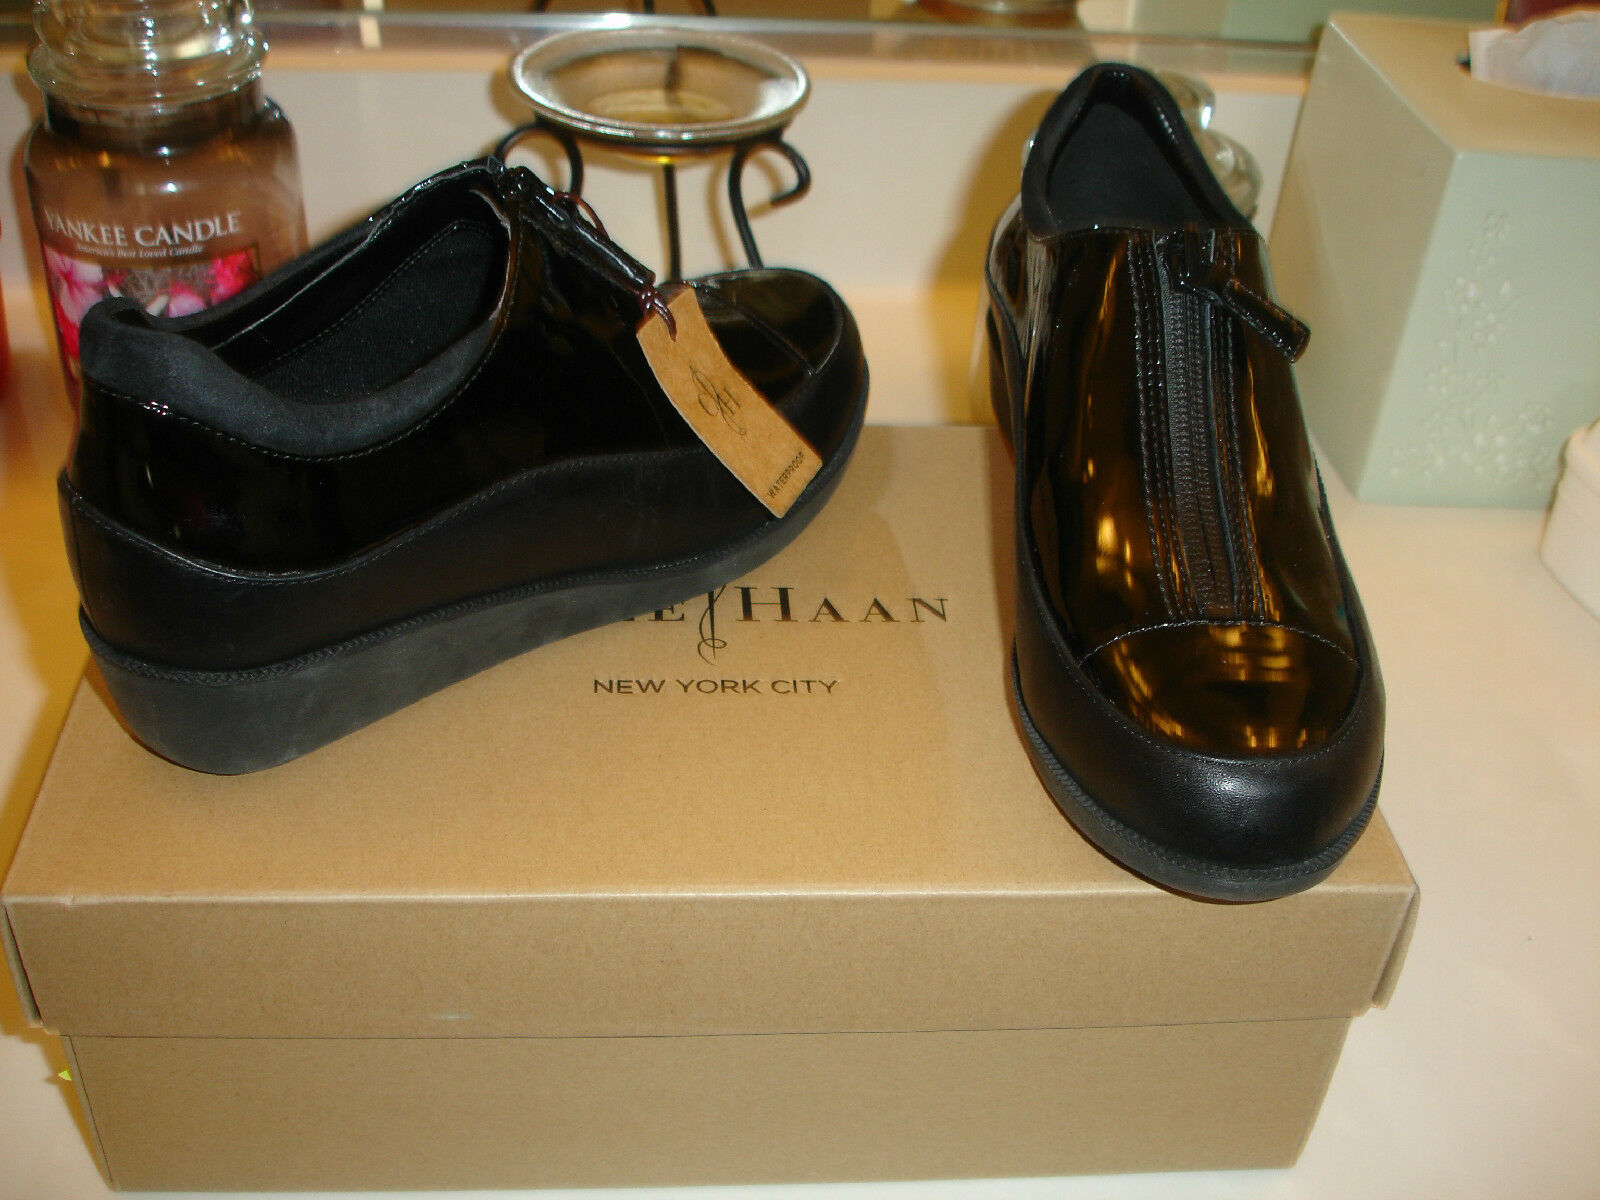 Cole Haan Tali Zip Zip Zip up Rain shoes  black patent leather Styllish Waterproof  270 6 bb50af